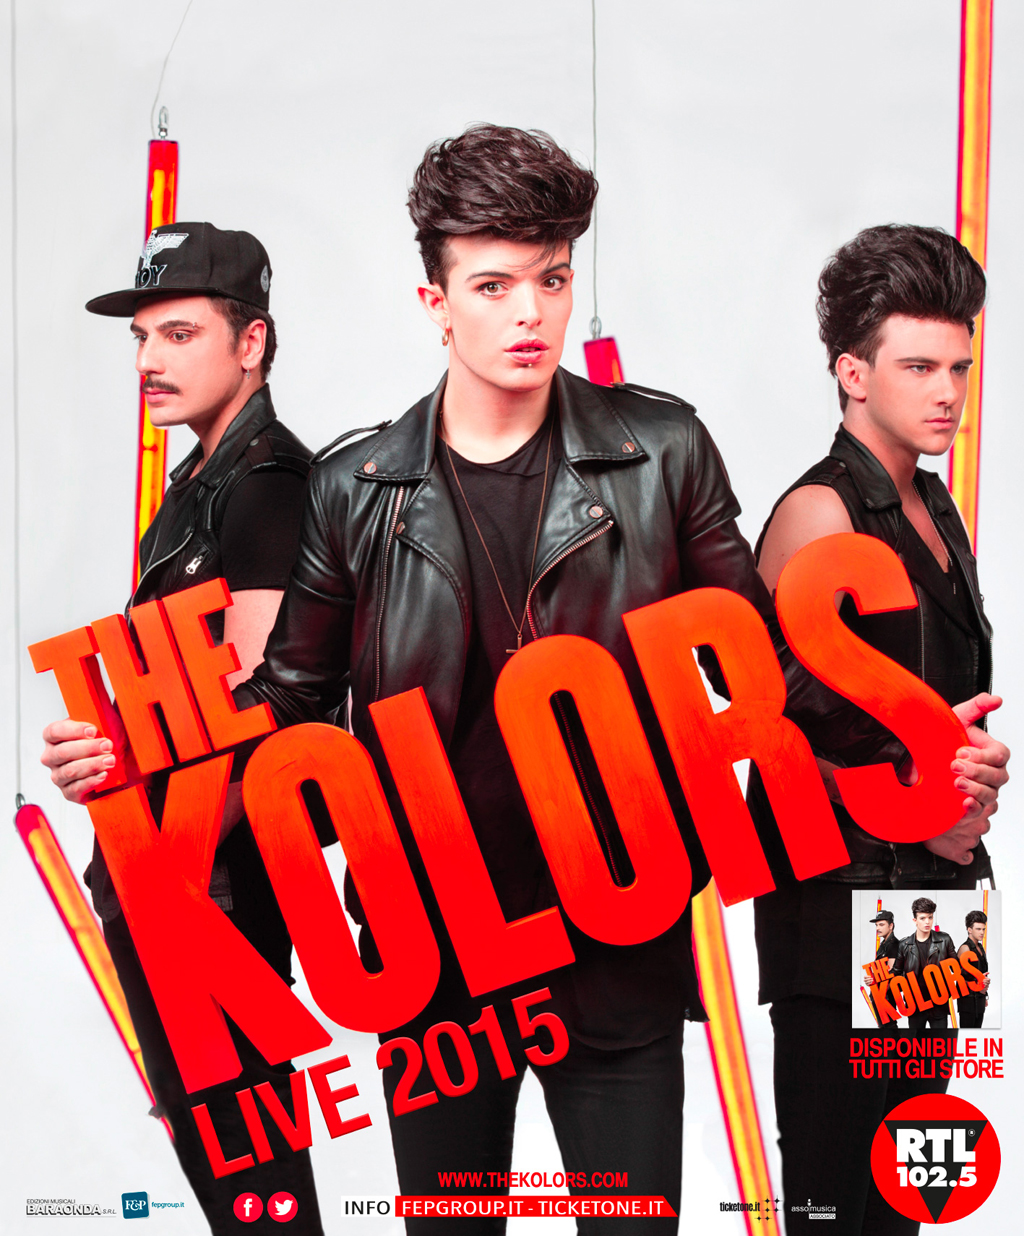 THE KOLORS IL 18 LUGLIO ALL'ARENA DEL MARE DI SALERNO